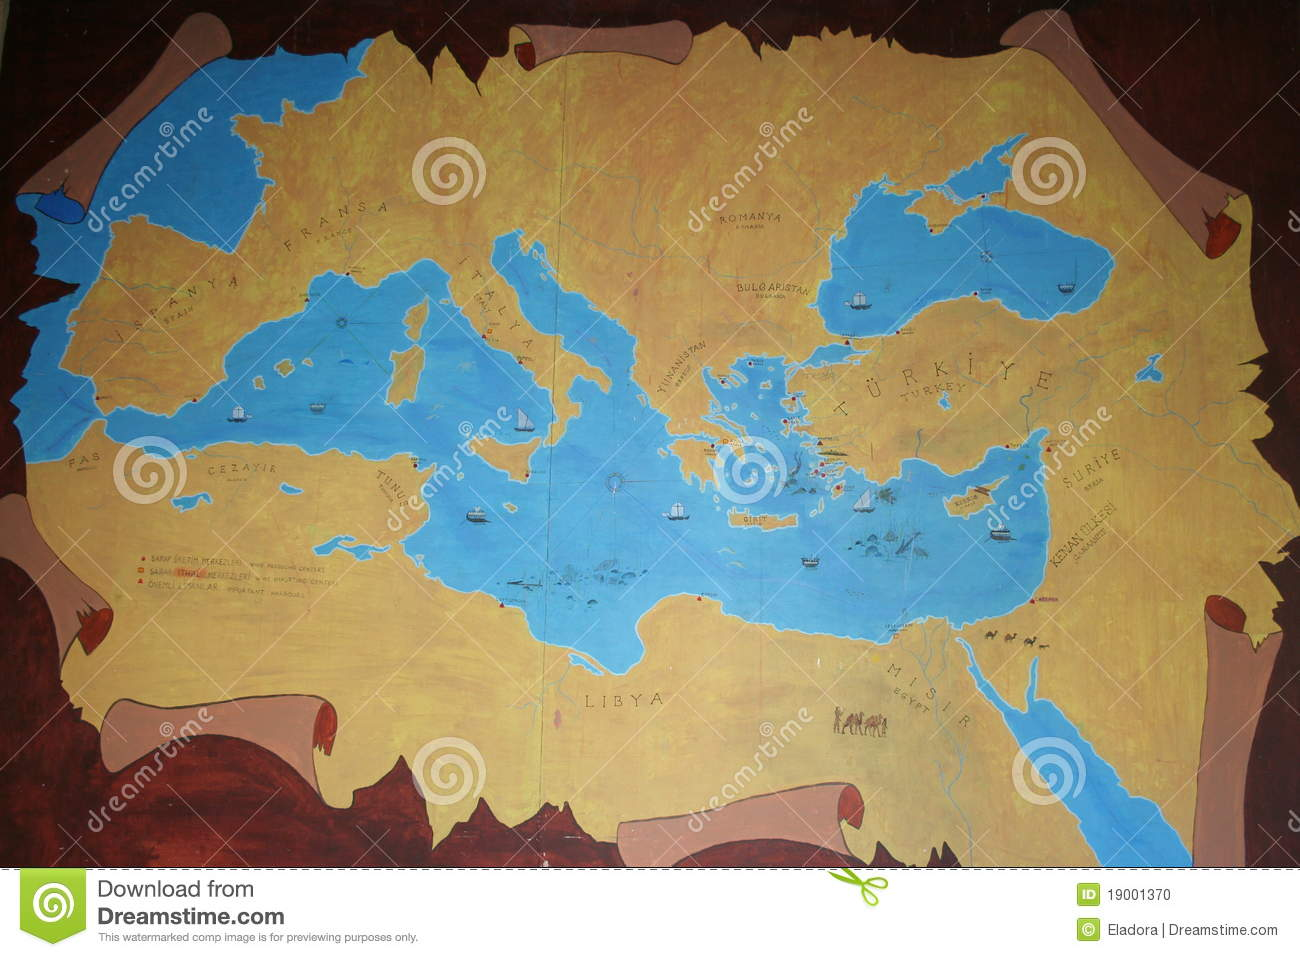 Map of ancient anatolia stock photo. Image of color, mail - 19001370